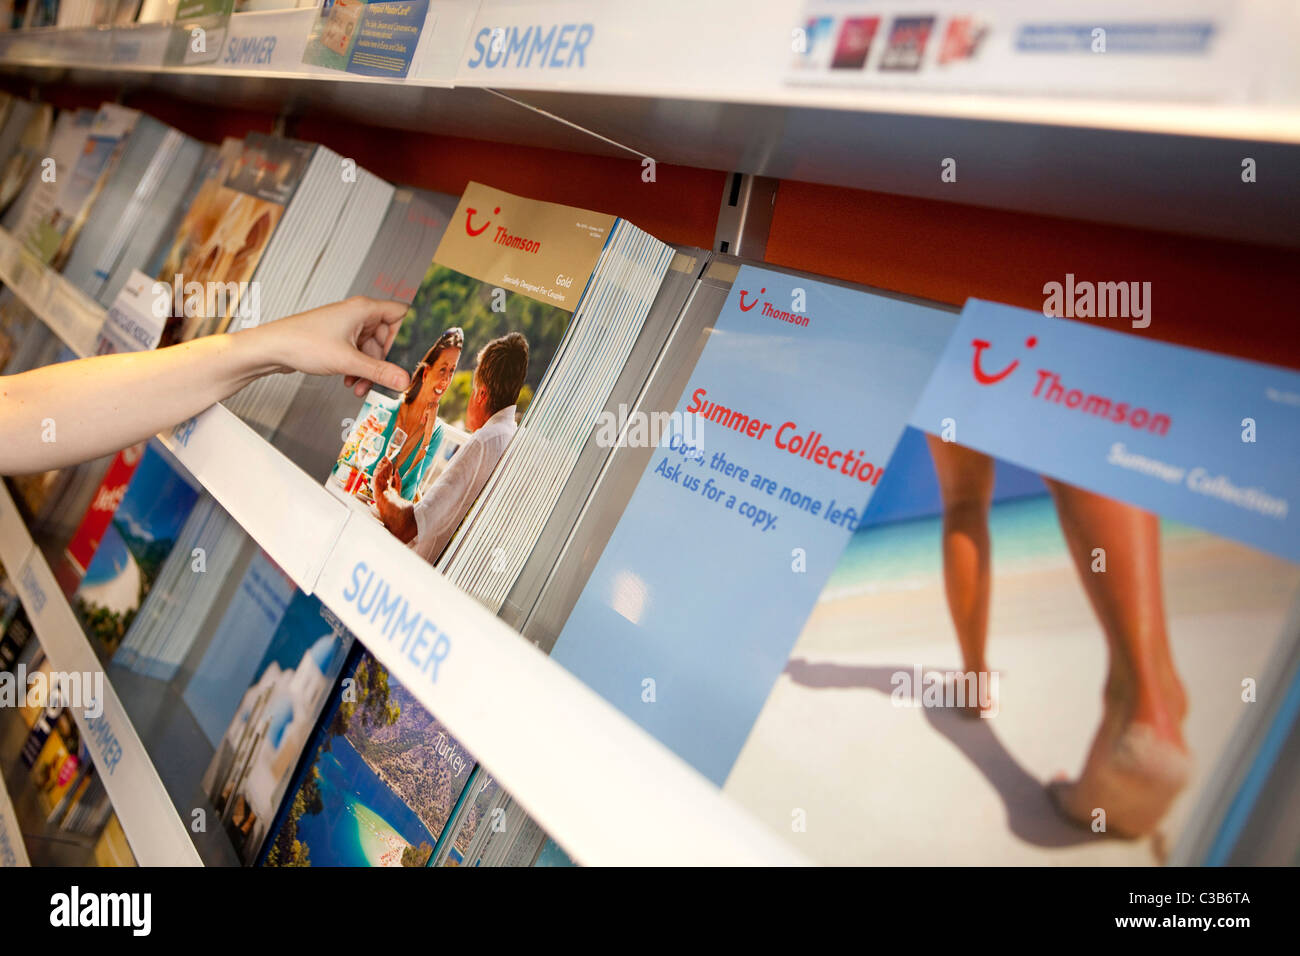 Illustrative image of a branch of Thomson Travel Agency, part of the TUI Travel Group. - Stock Image